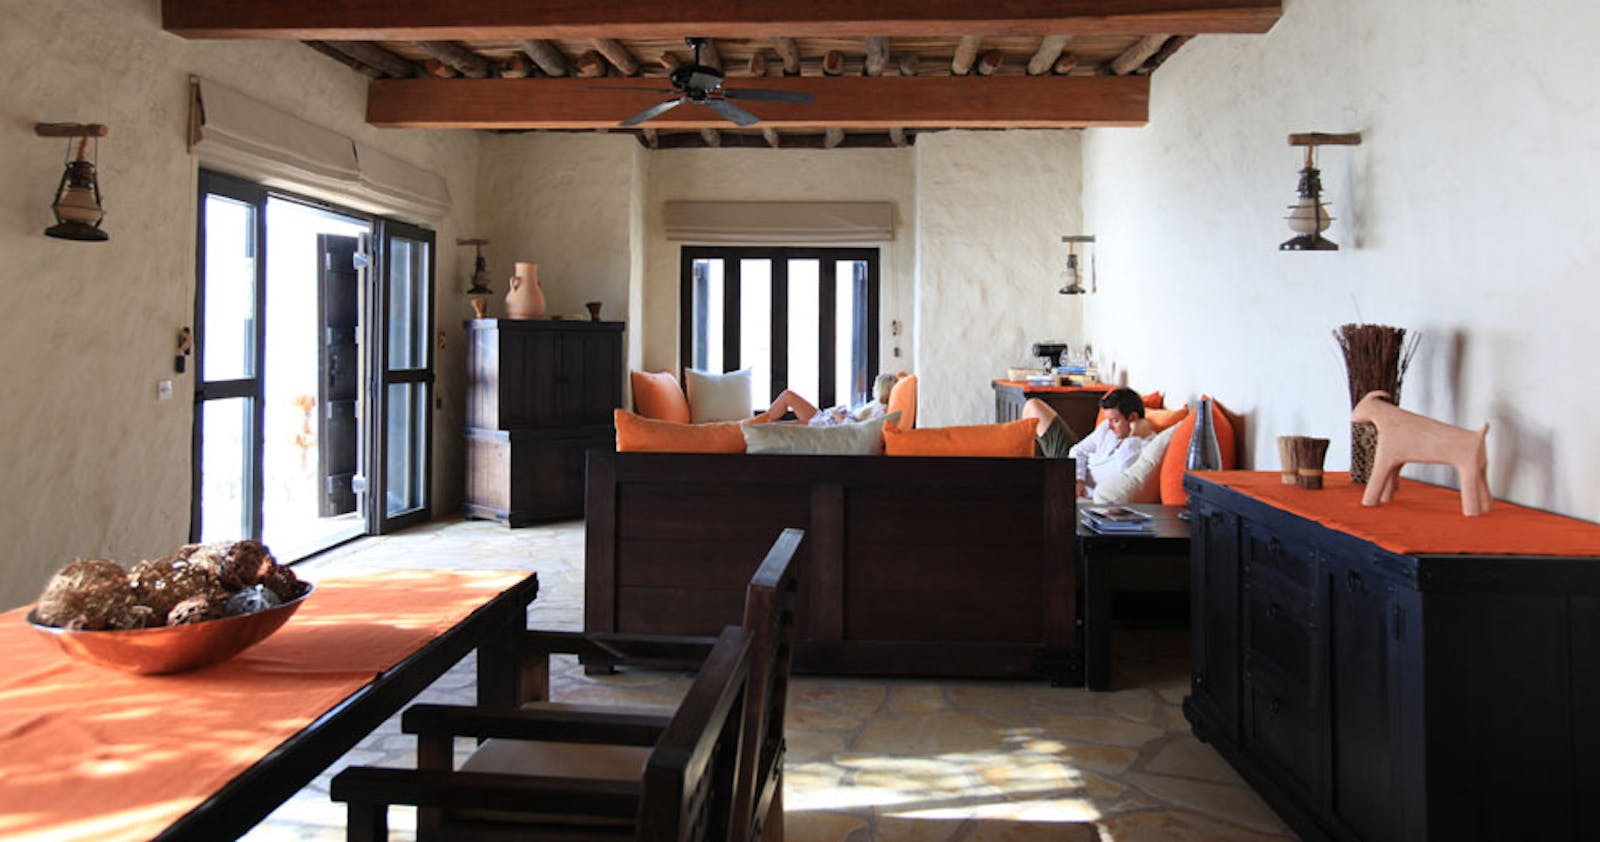 Living Room Area at Private Retreats and Reserve at Six Senses Zighy Bay